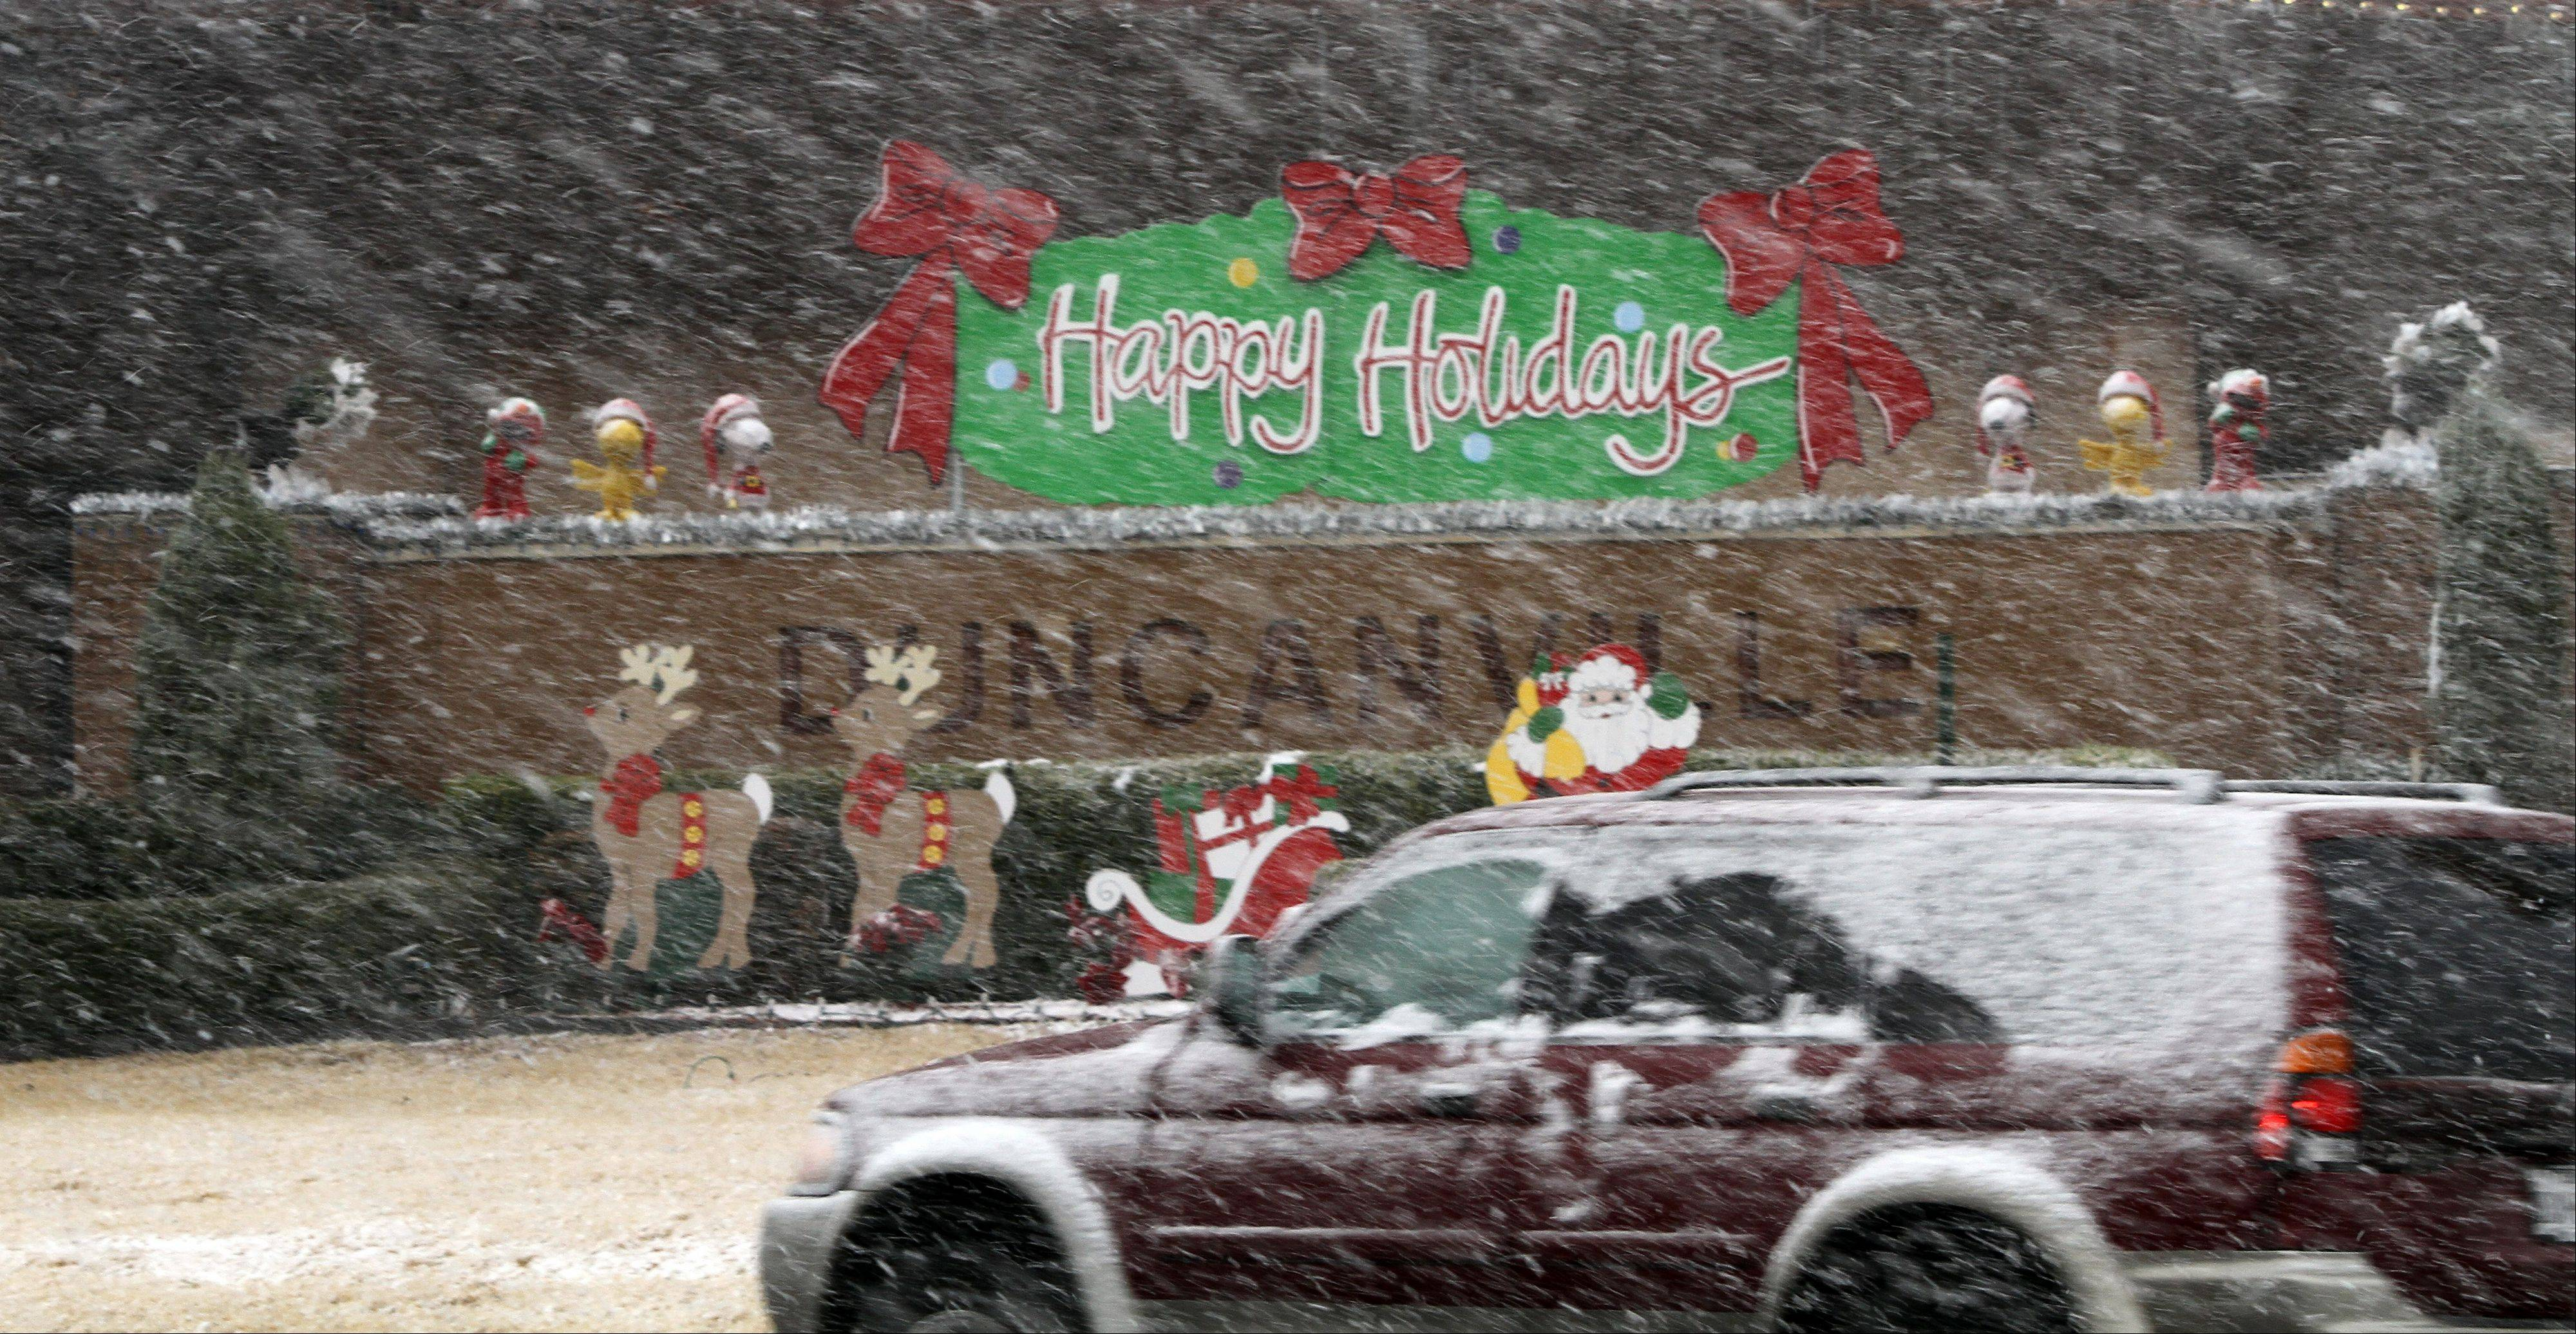 Christmas Day snow falls on Main Street near the Duncanville Police Department in Duncanville, Texas on Tuesday, Dec. 25, 2012.